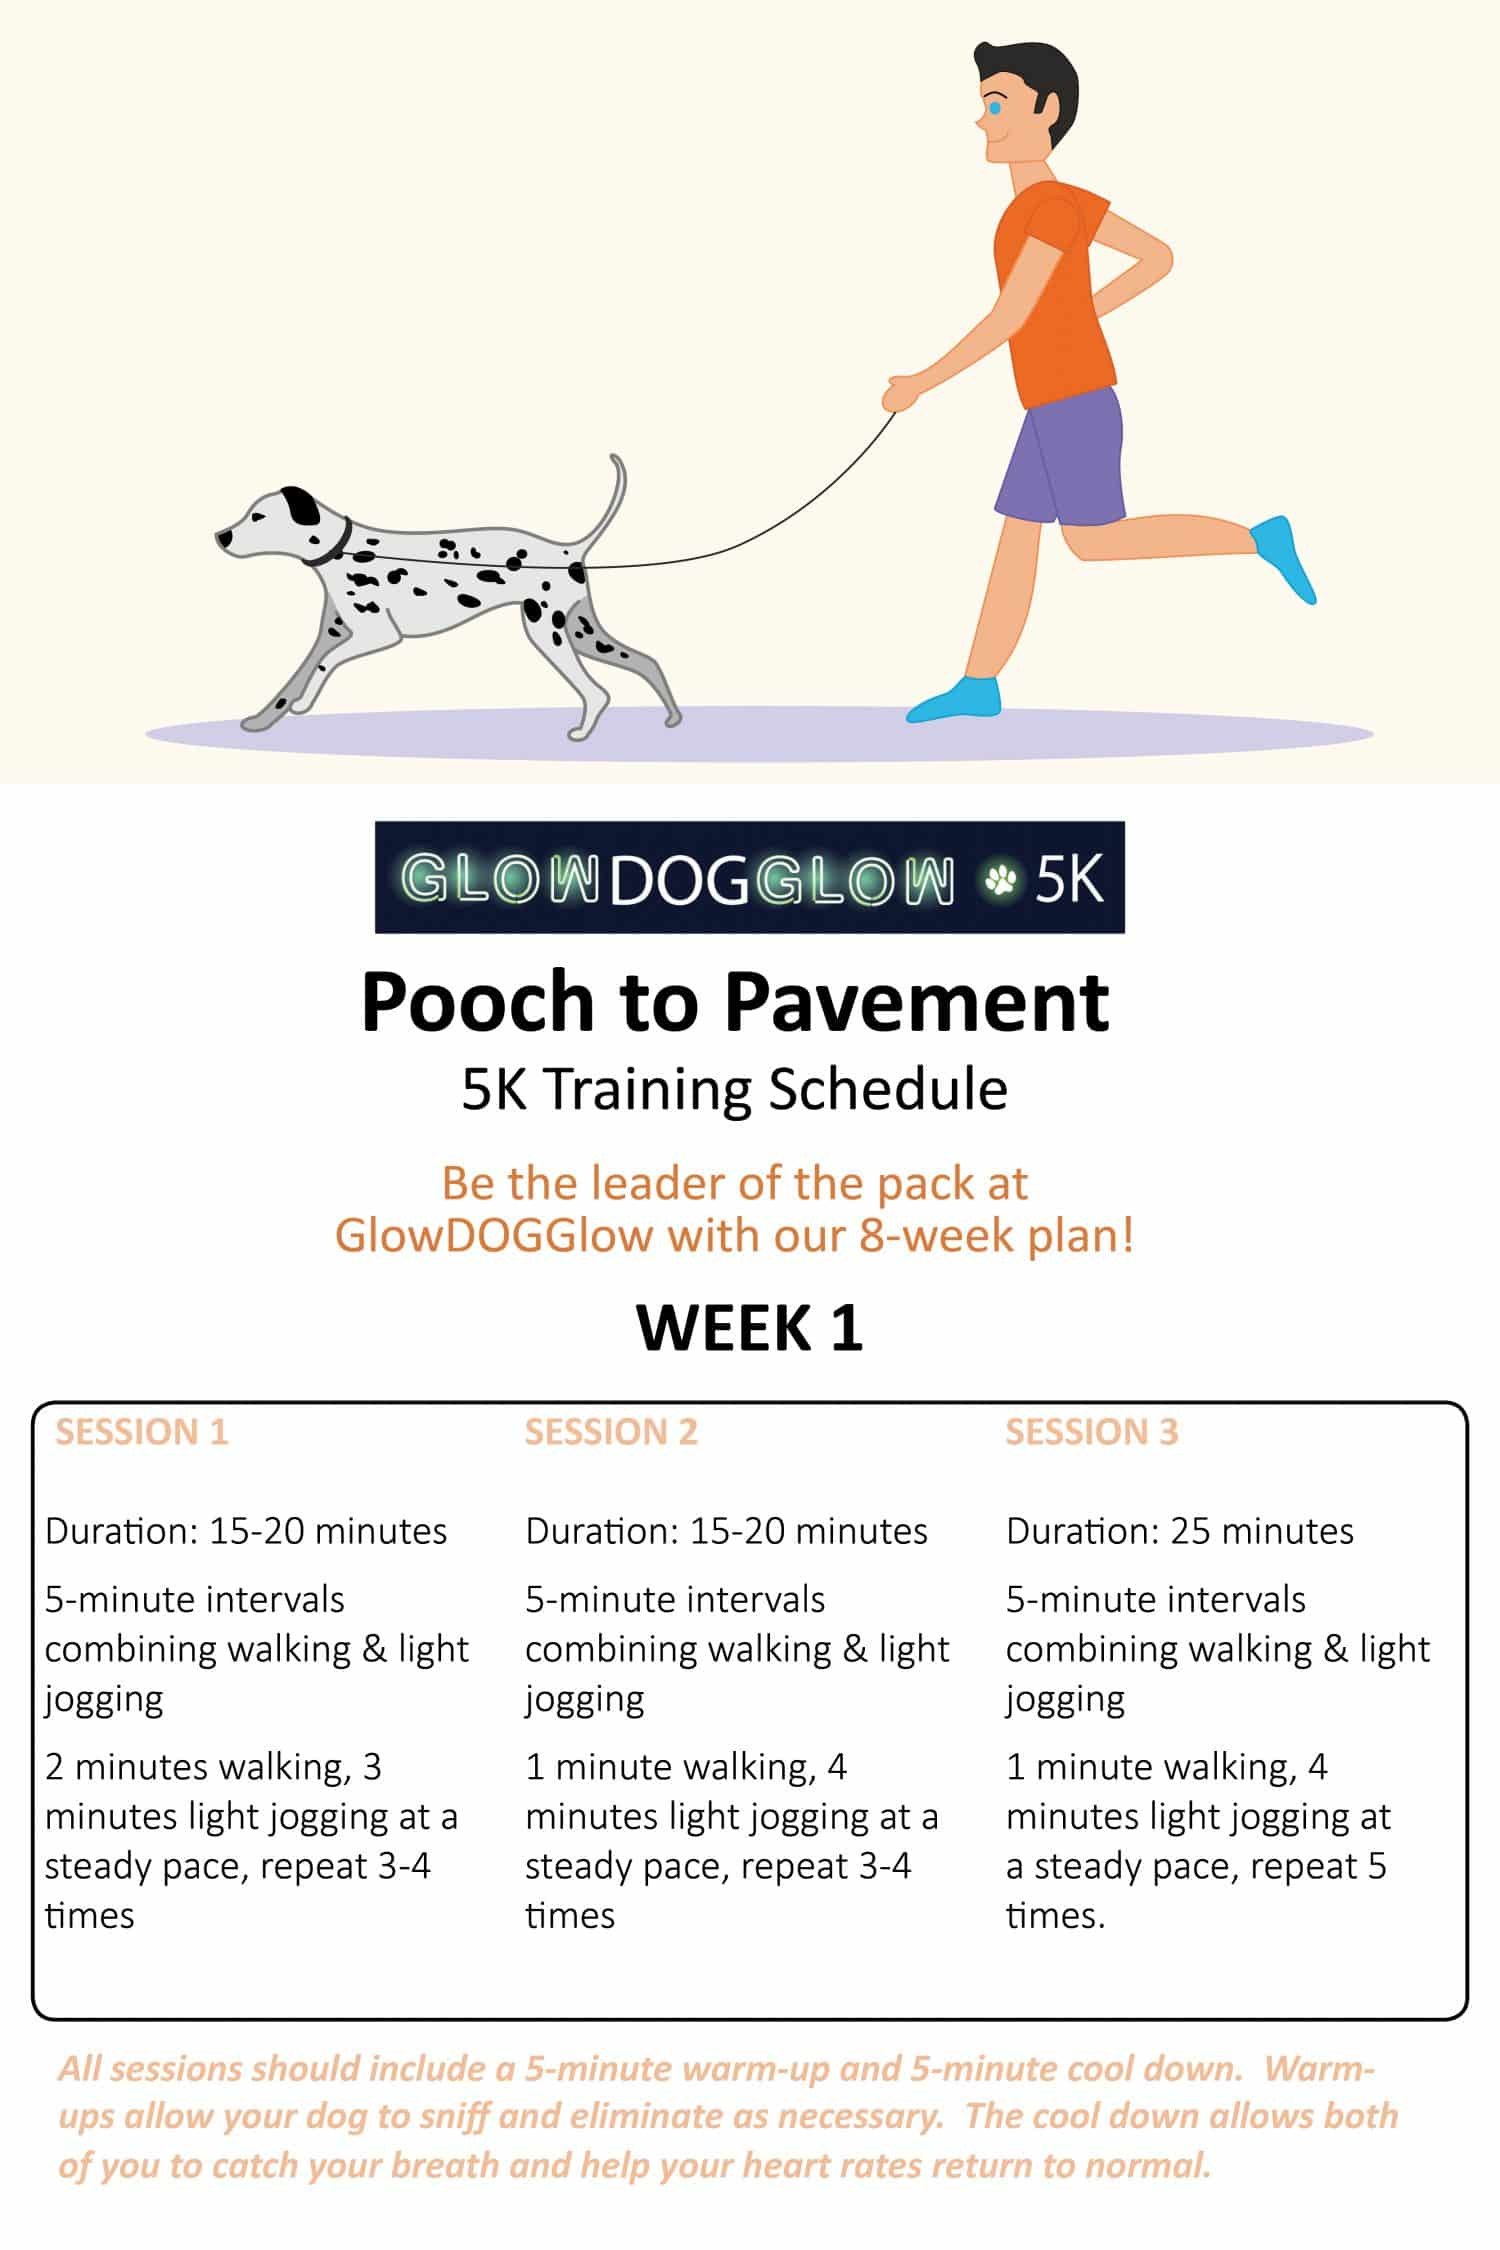 Pooch to Pavement Canine Running Training Plan NOVADog Magazine Glow Dog Glow 5K Race